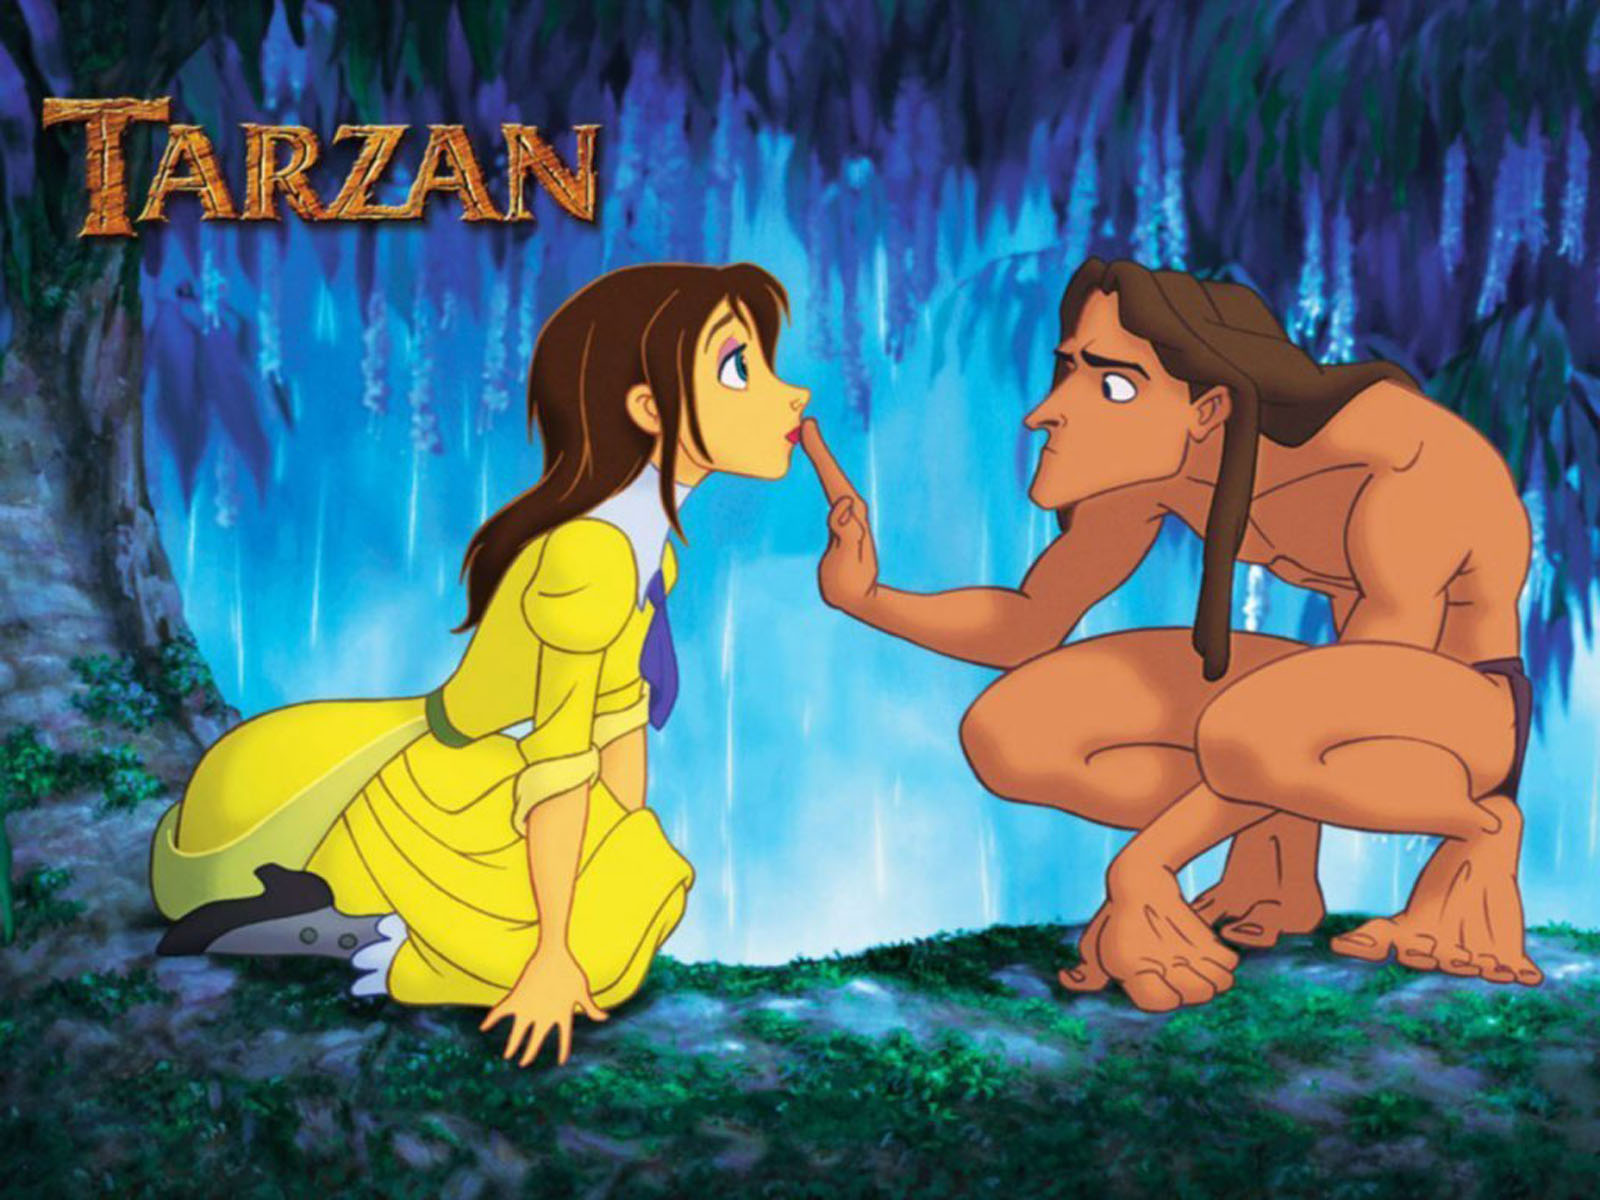 Wallpapers tarzan wallpapers - Tarzan wallpaper ...